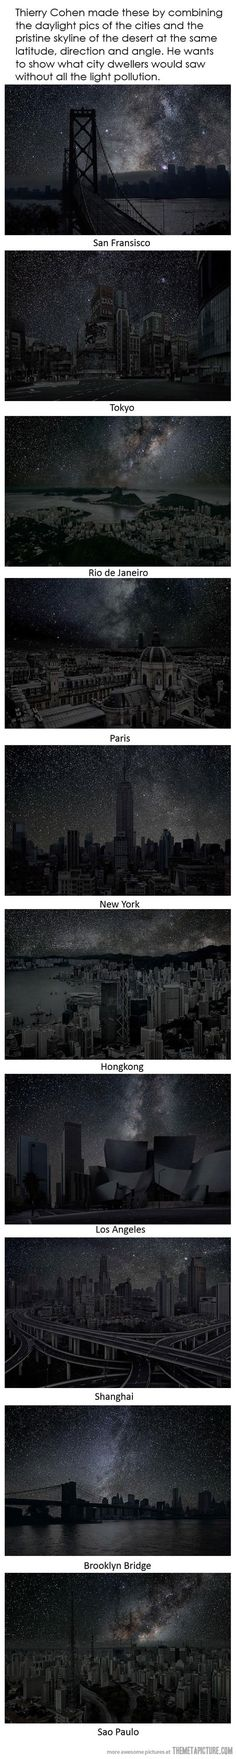 Wish this is how cities did look at night!